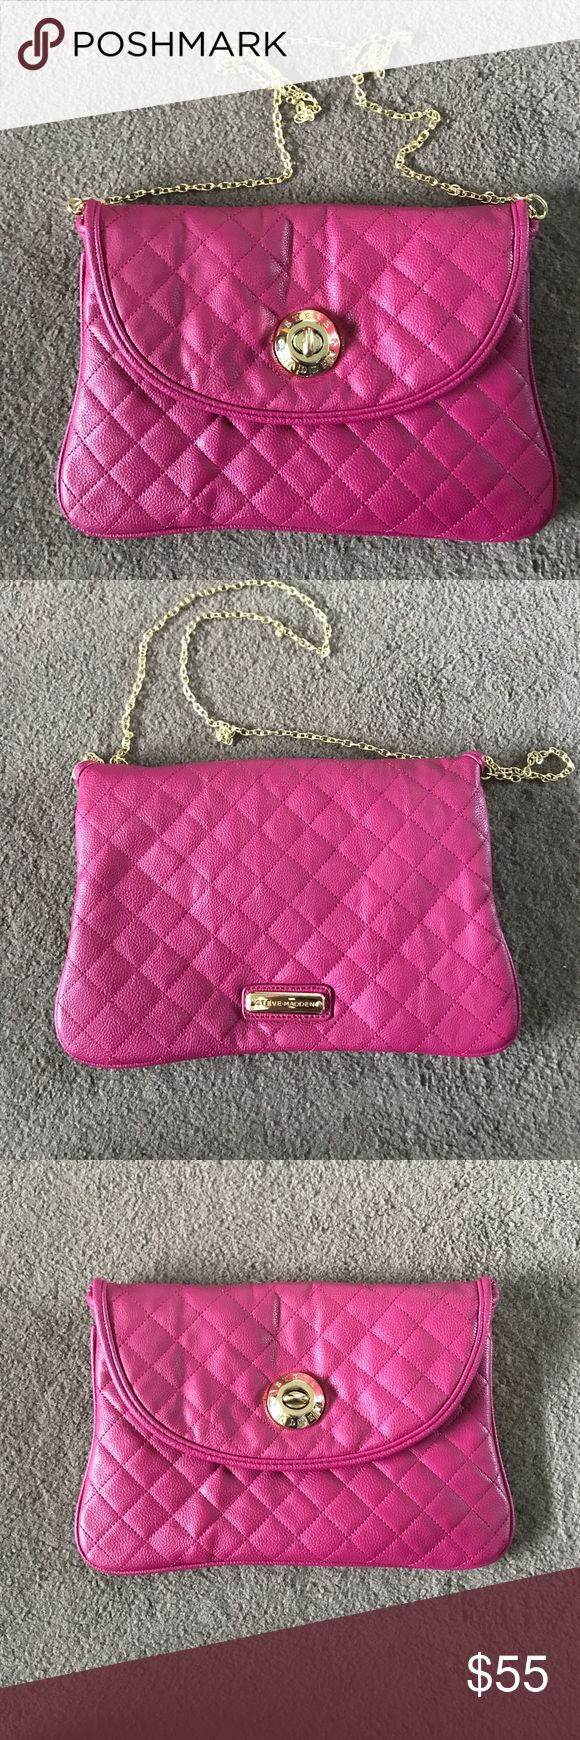 Steve Madden pink envelope clutch Pink clutch comes with a gold chain strap Steve Madden Bags Clutches & Wristlets